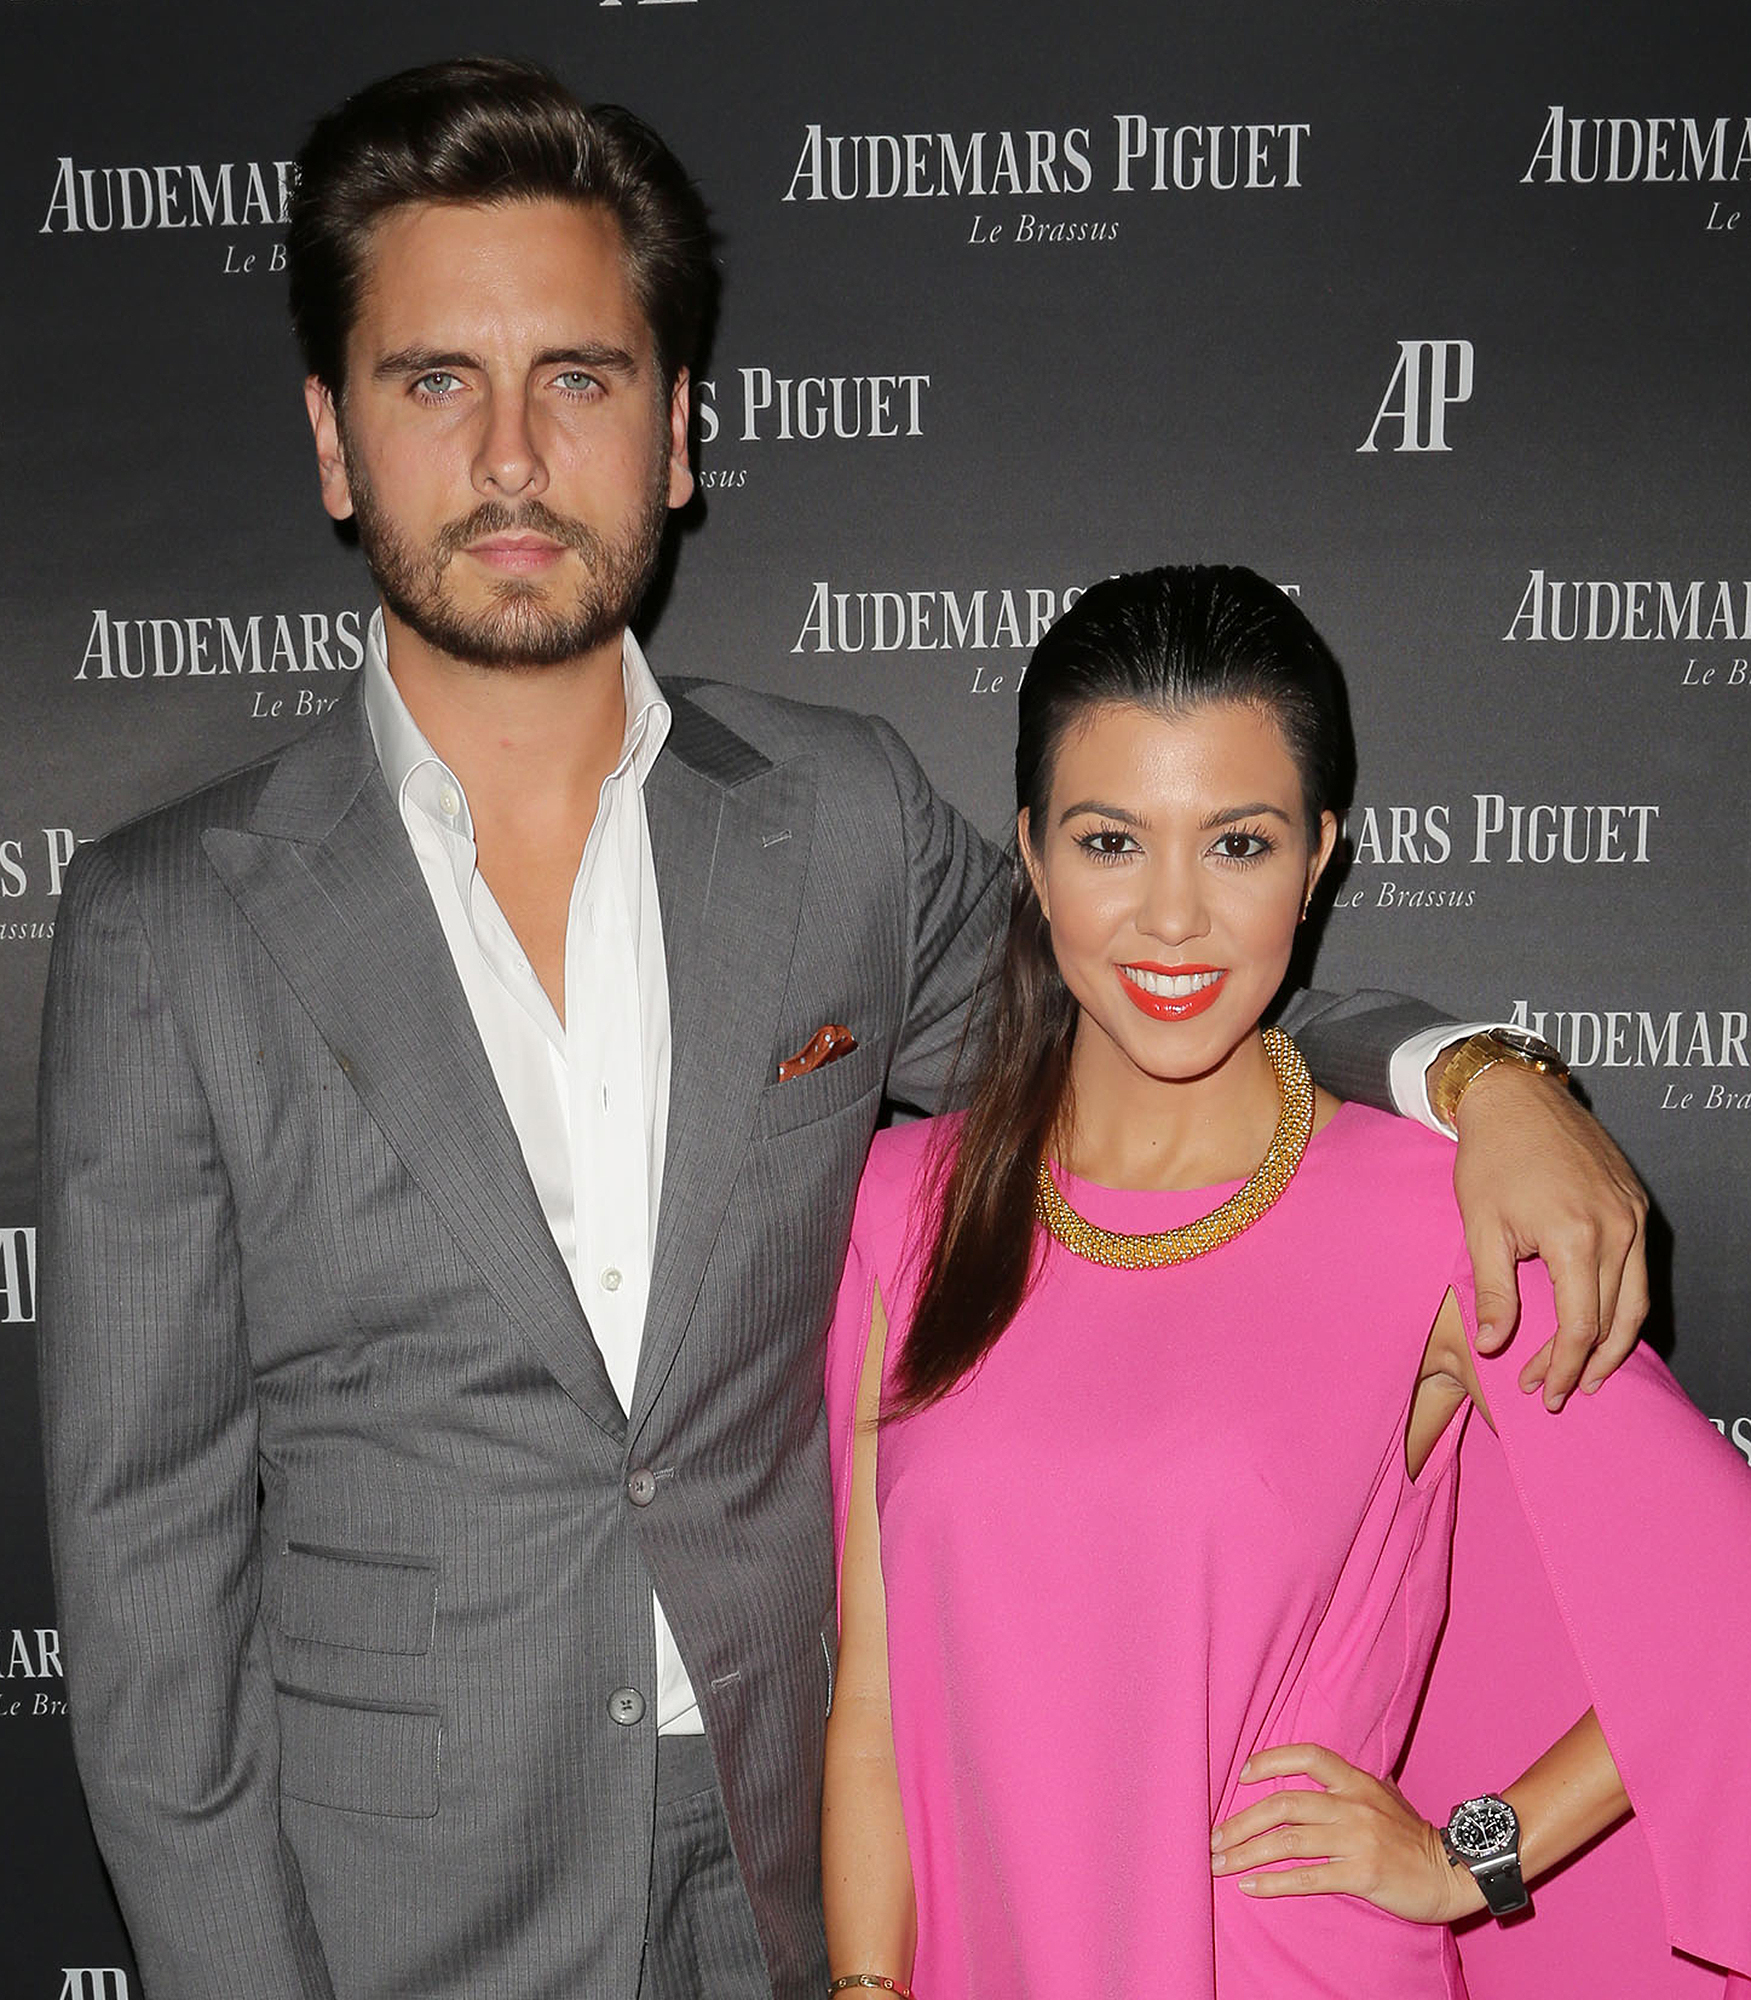 celebrity breakups Kourtney Kardashian Scott Disick